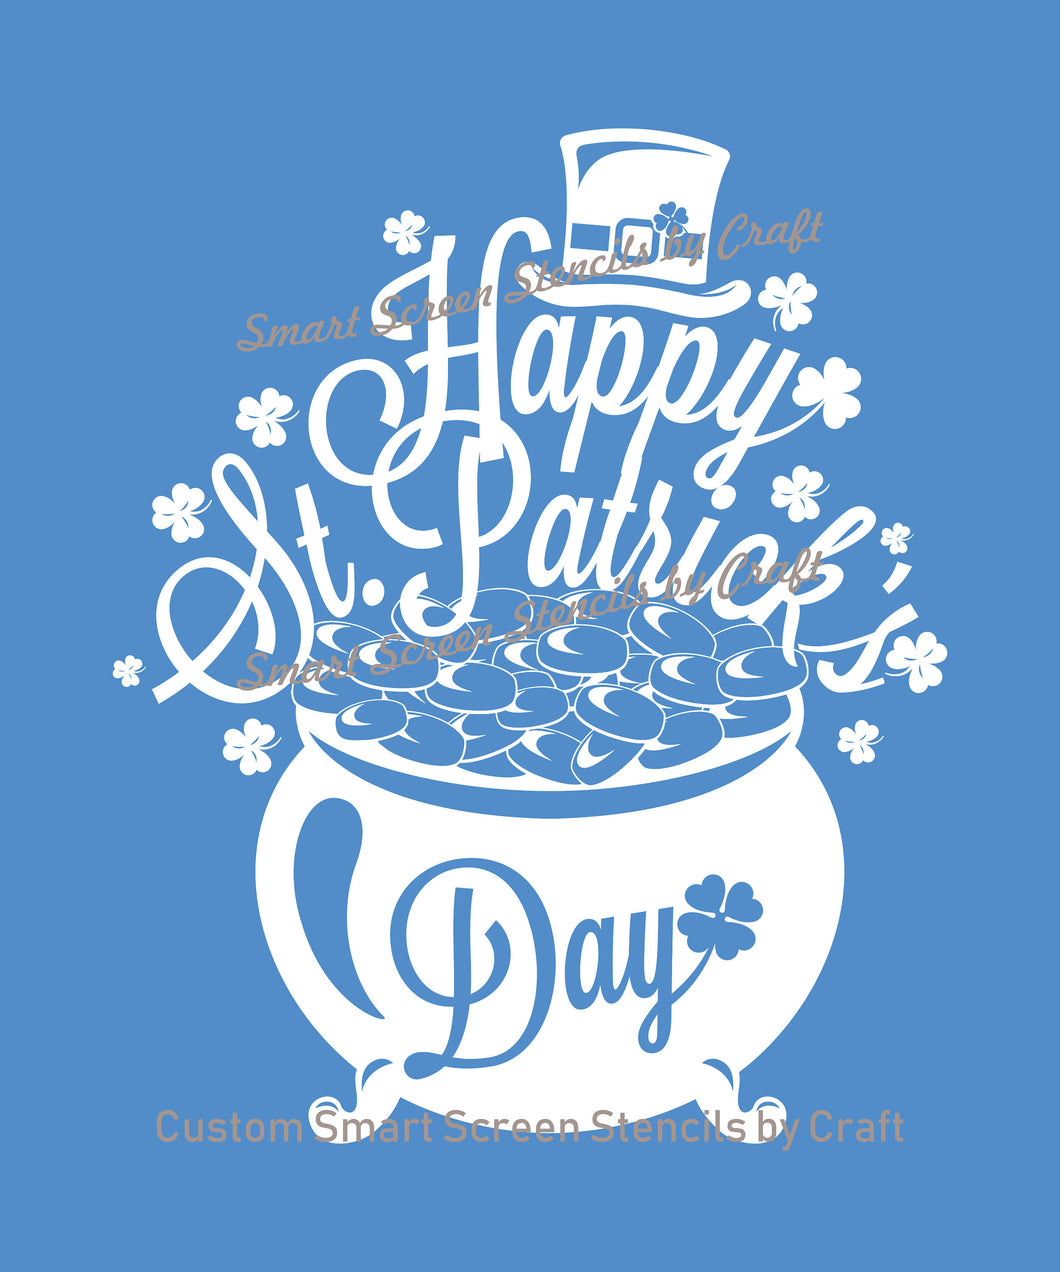 Pot of Gold Smart Screen Stencil by Craft - St. Patrick'a Day - Reusable, Self Adhesive - Fabric, Ceramic, Glass, Wood, Metal, Paper, Clay